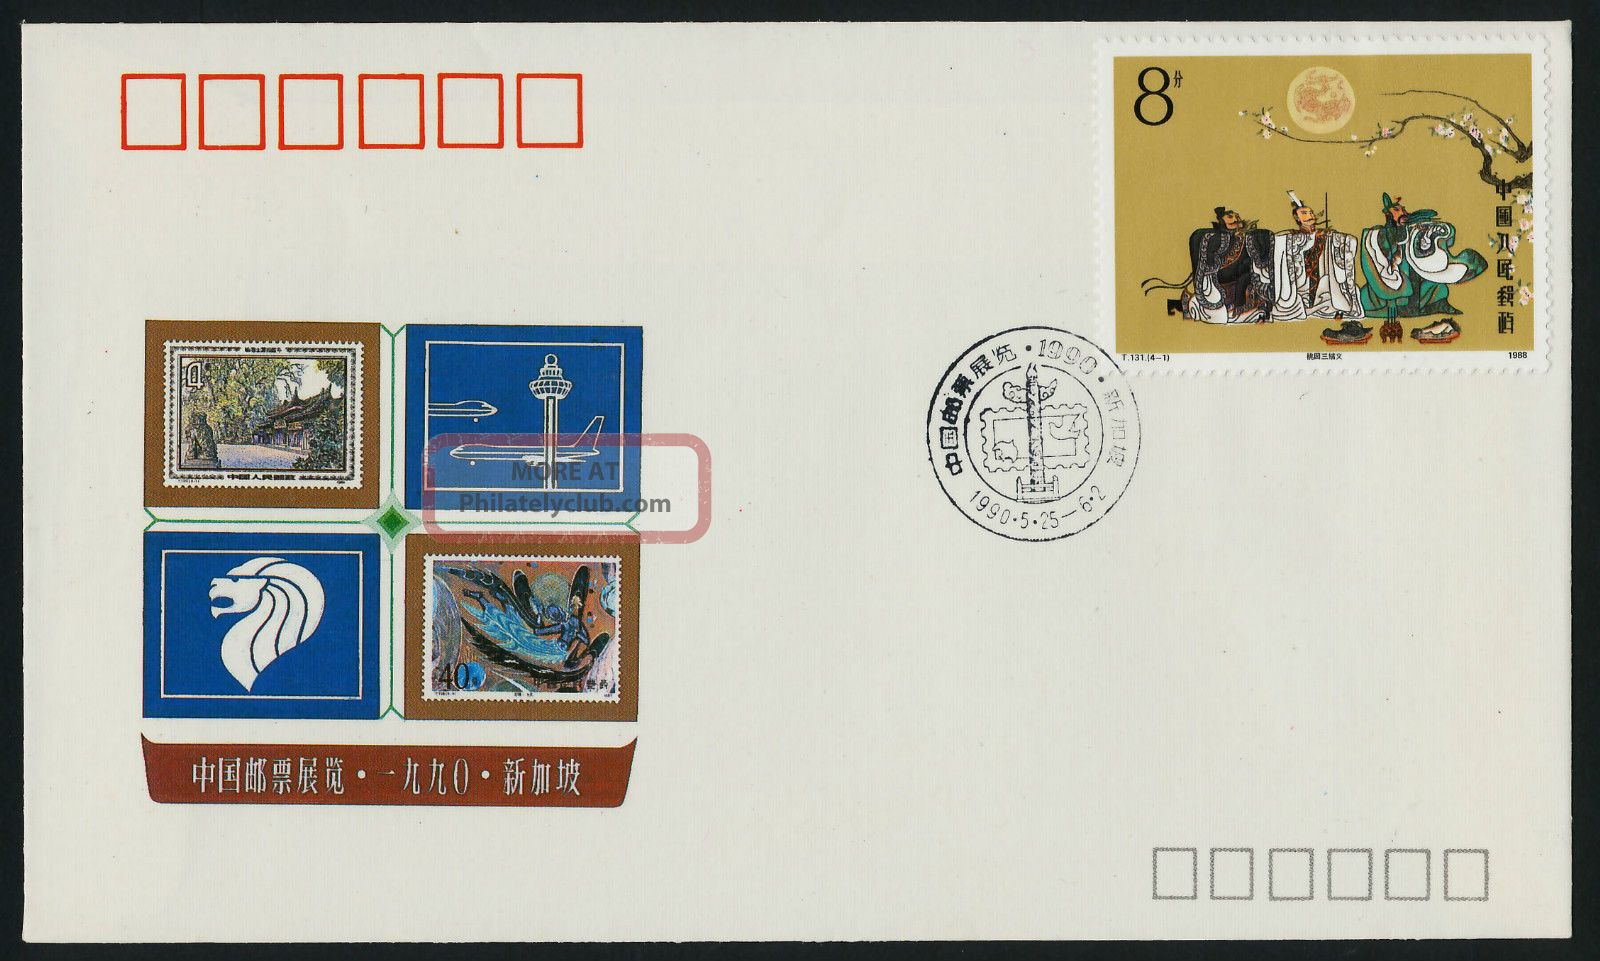 China Pr 2176 On Cover (wz - 55) Stamp Exhibition 1990 - Singapore Asia photo